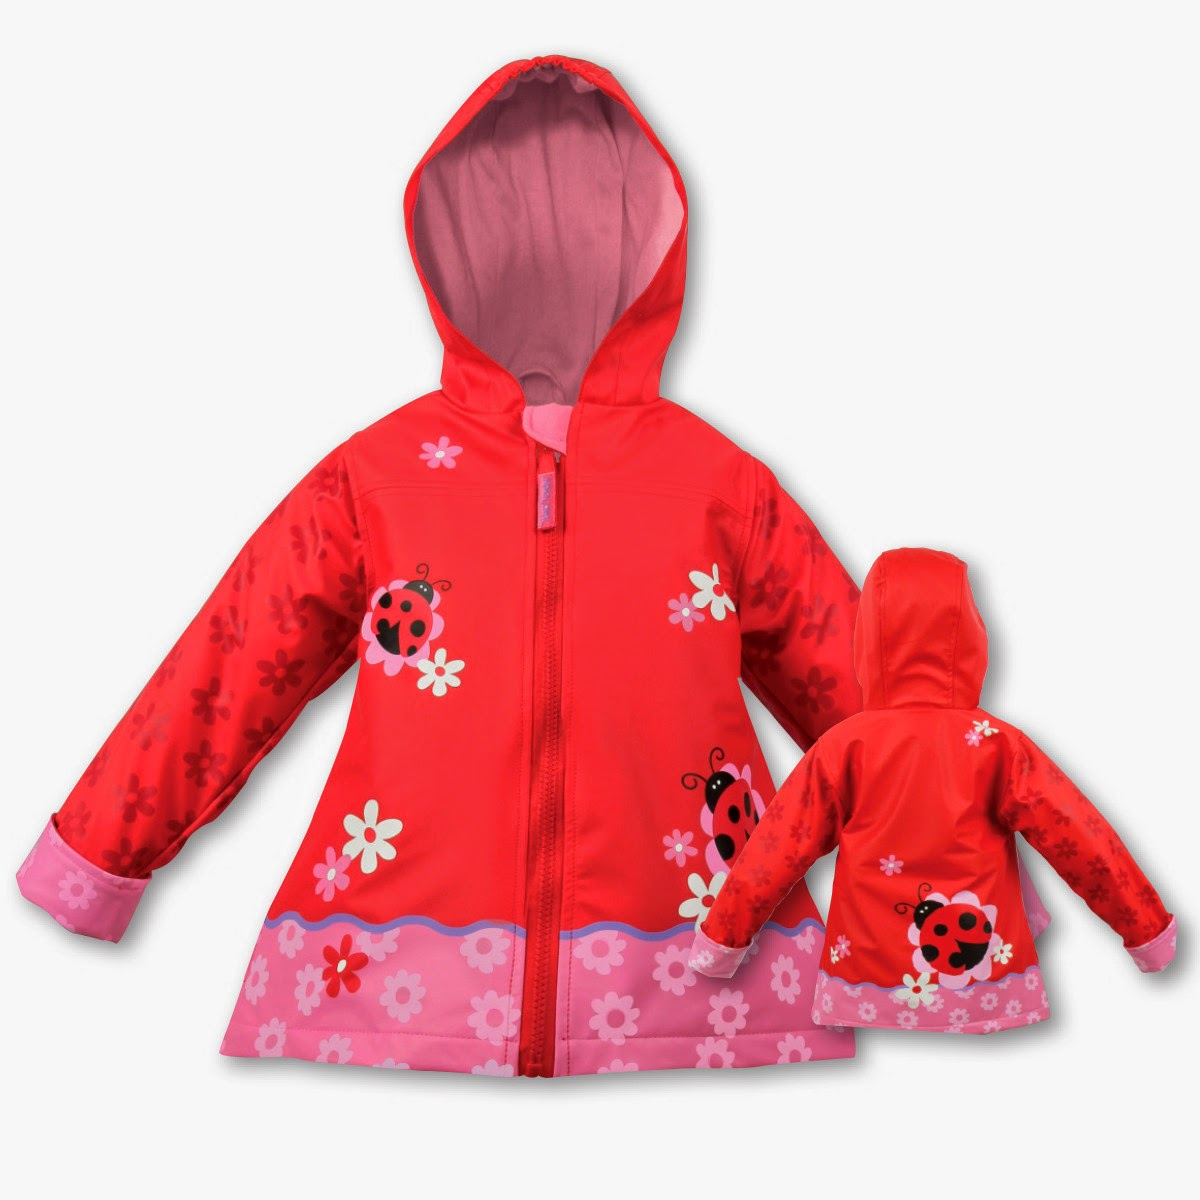 Personalised Raincoats For kids Australia